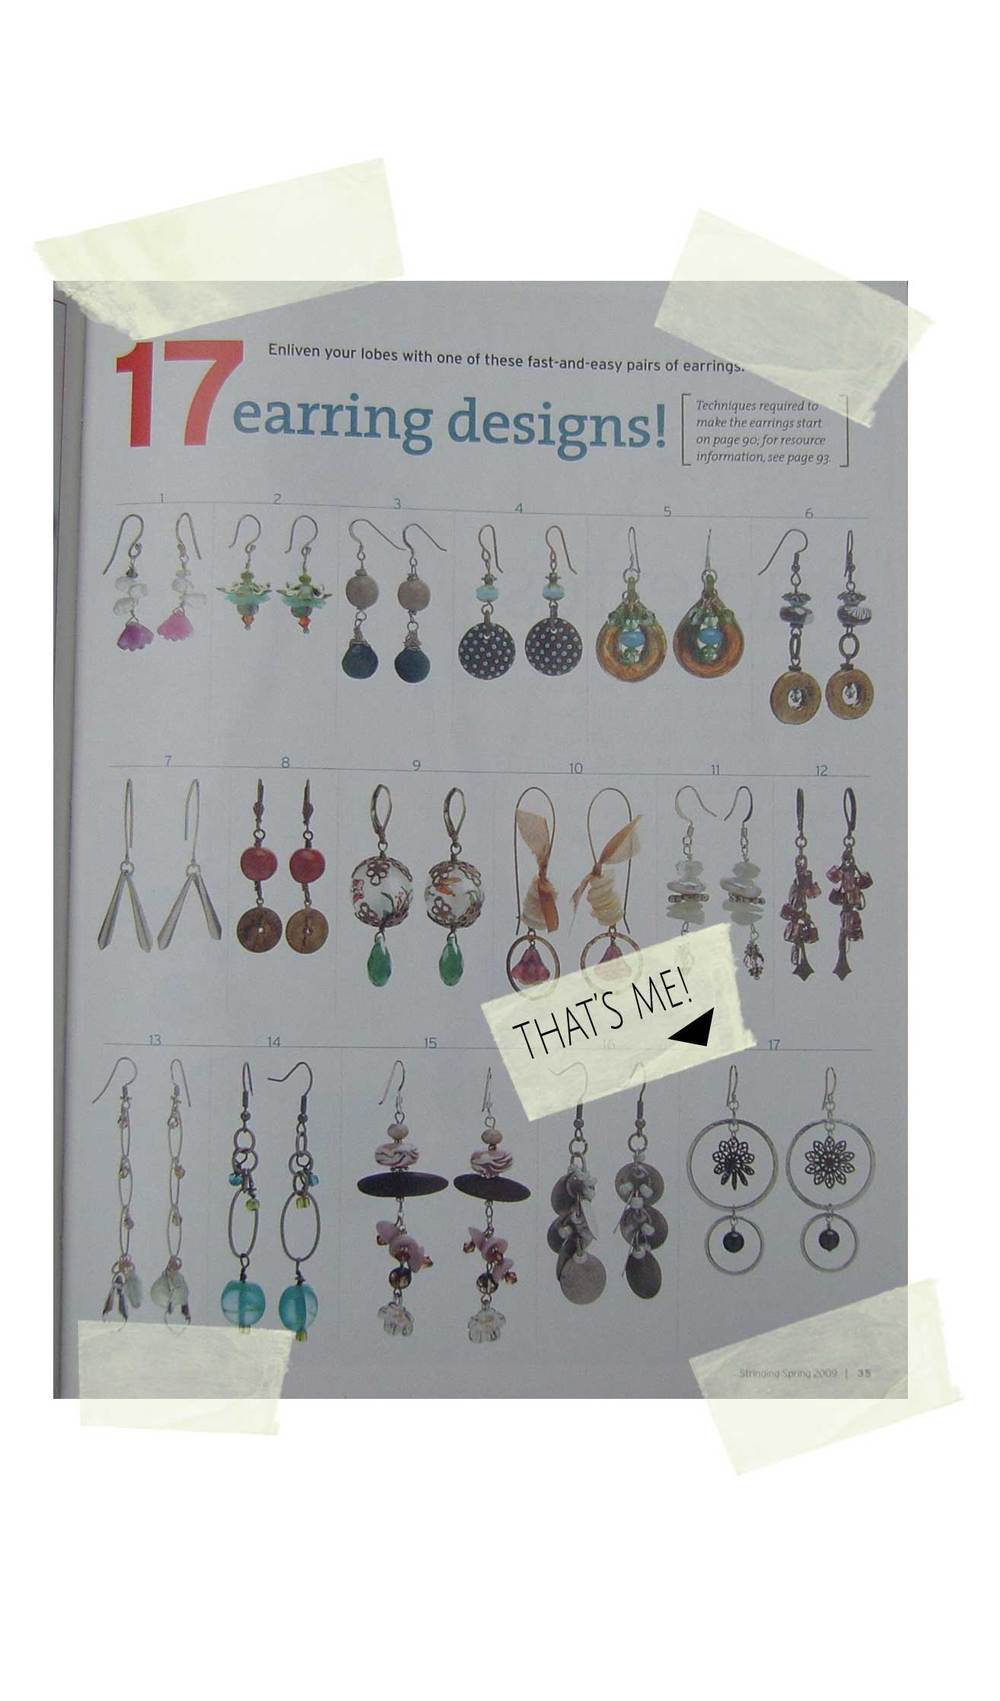 17earrings.jpg